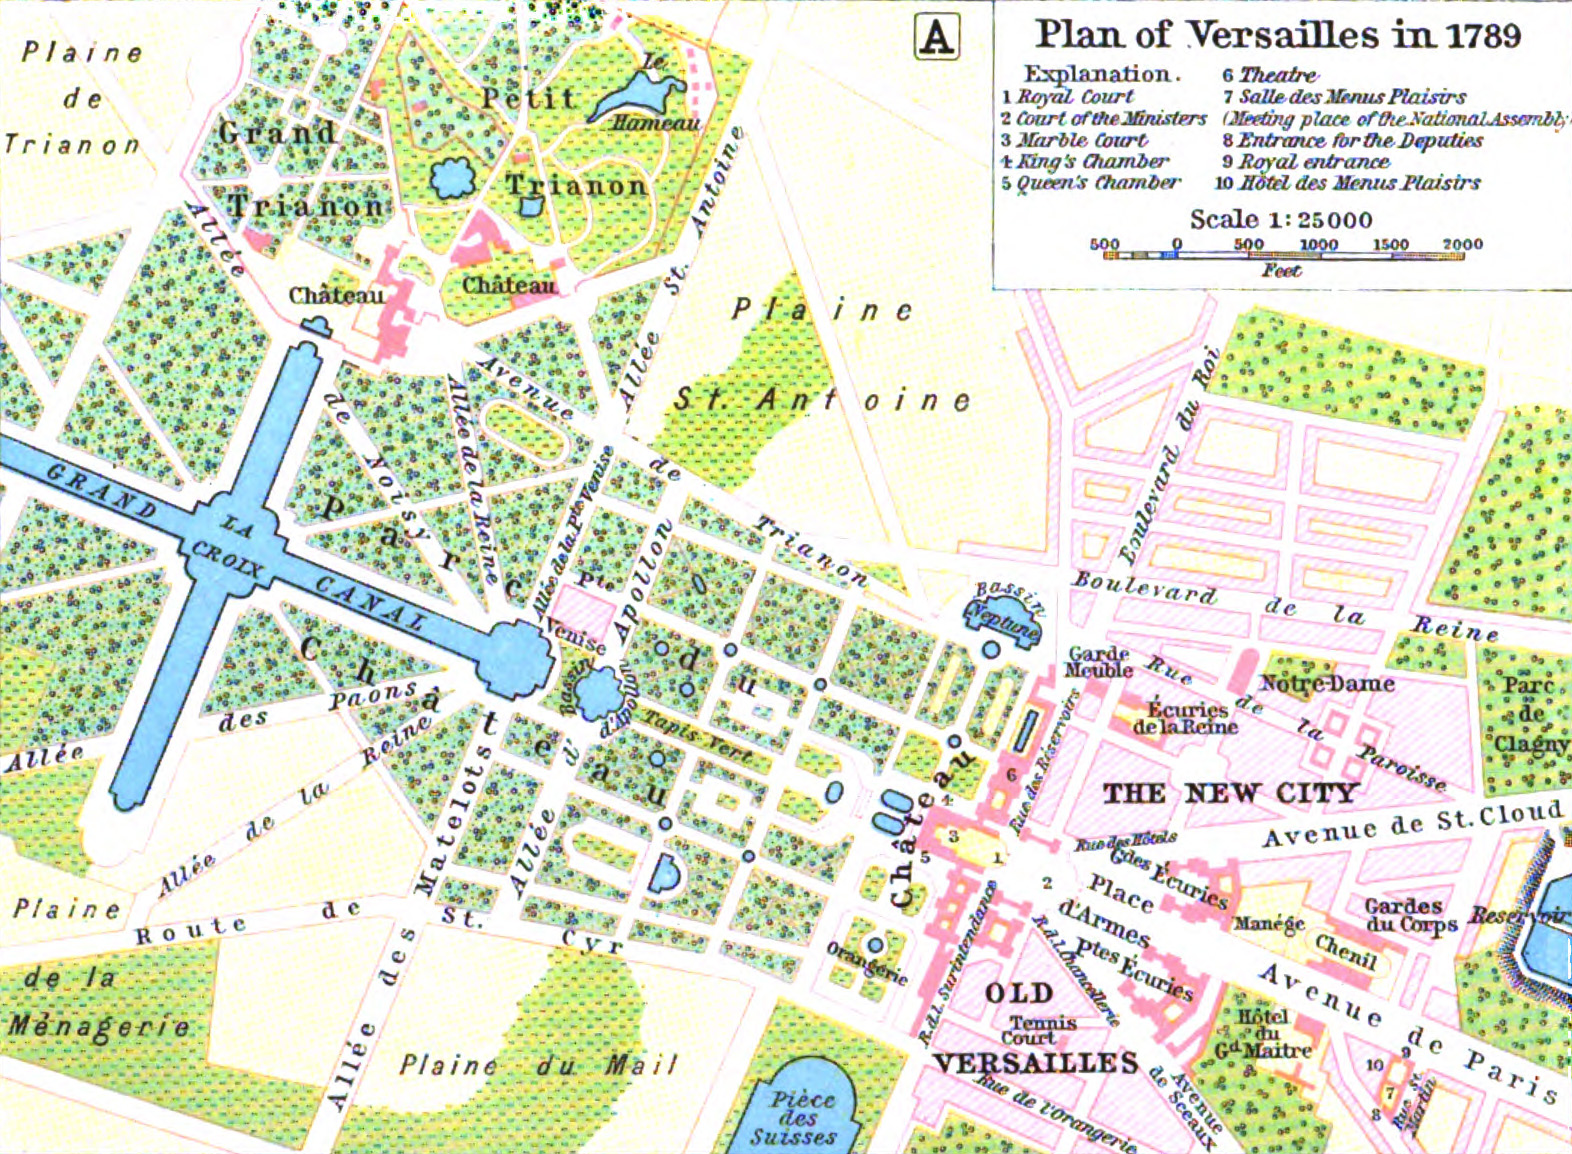 file map of versailles in 1789 by william r shepherd died 1934 jpg wikimedia commons. Black Bedroom Furniture Sets. Home Design Ideas